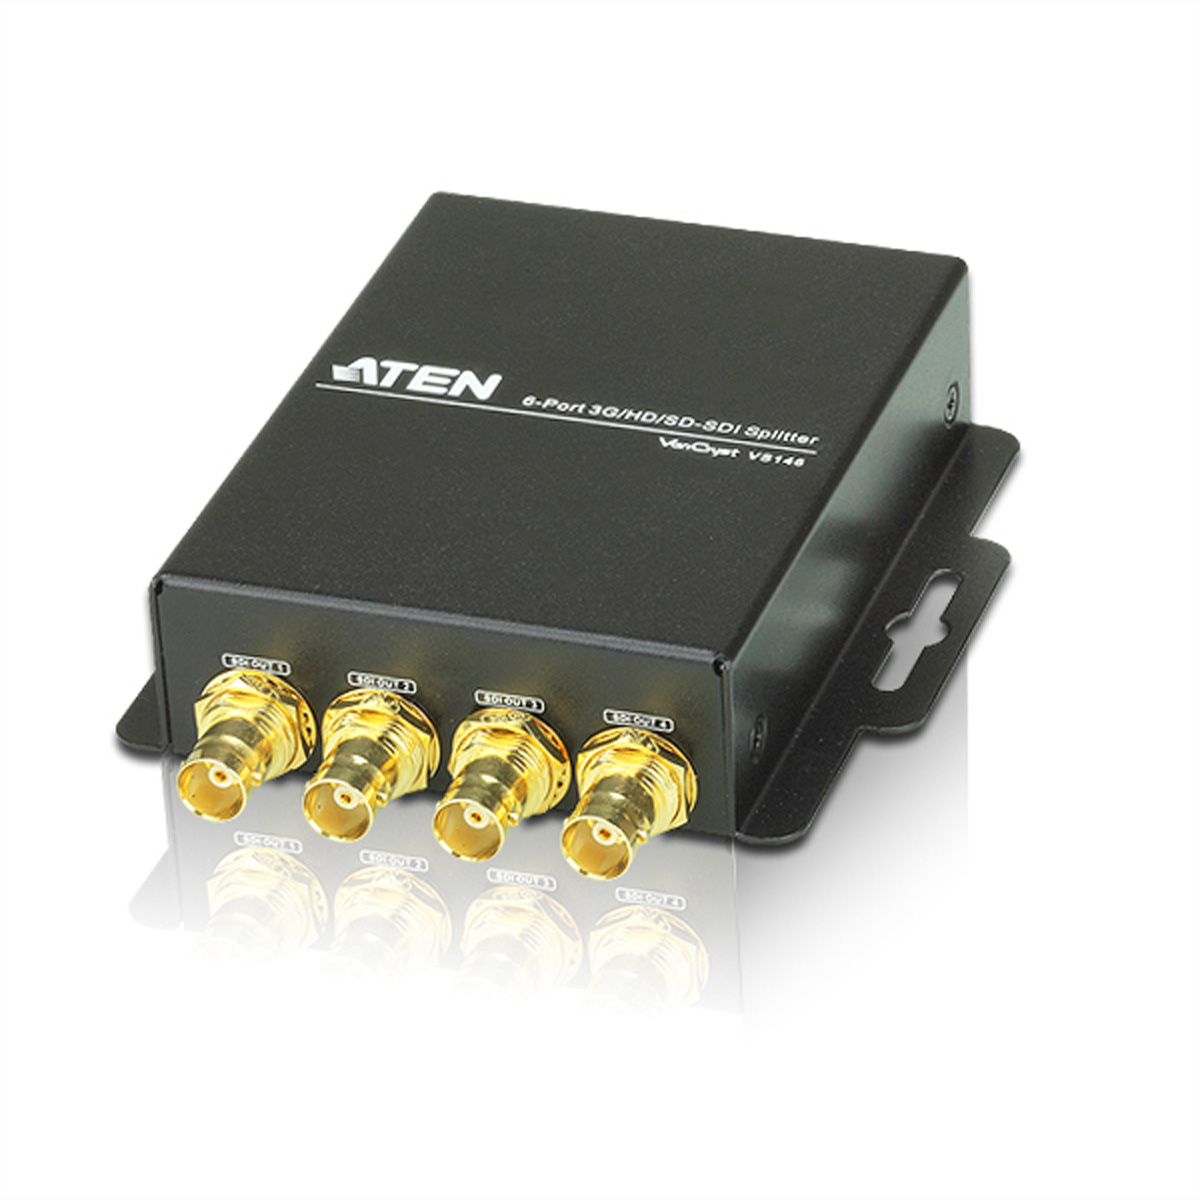 ATEN VS146 6 Port to 3G/HD/SD-SDI Splitter